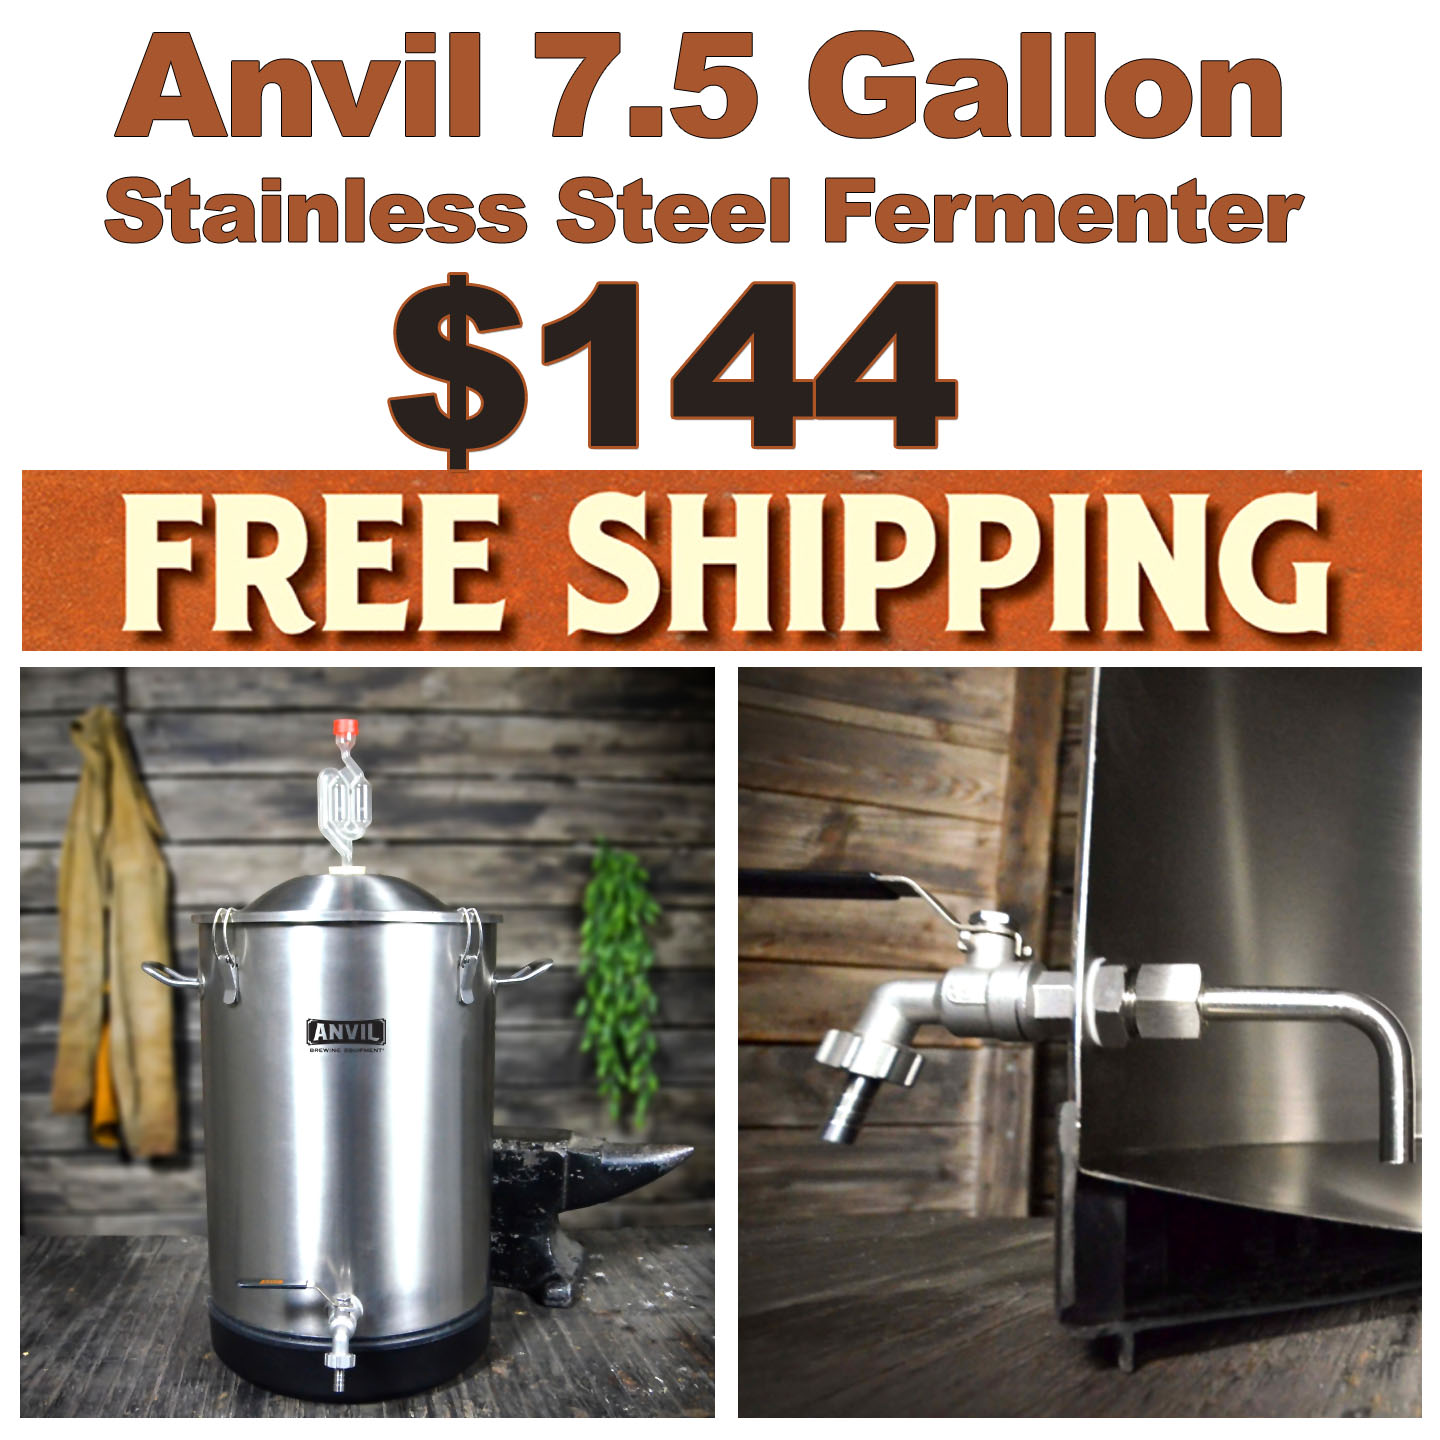 Get an Anvil 7.5 Gallon Stainless Steel Fermenter for Just $144 Plus Free Shipping with this Anvil Promo Code Coupon Code